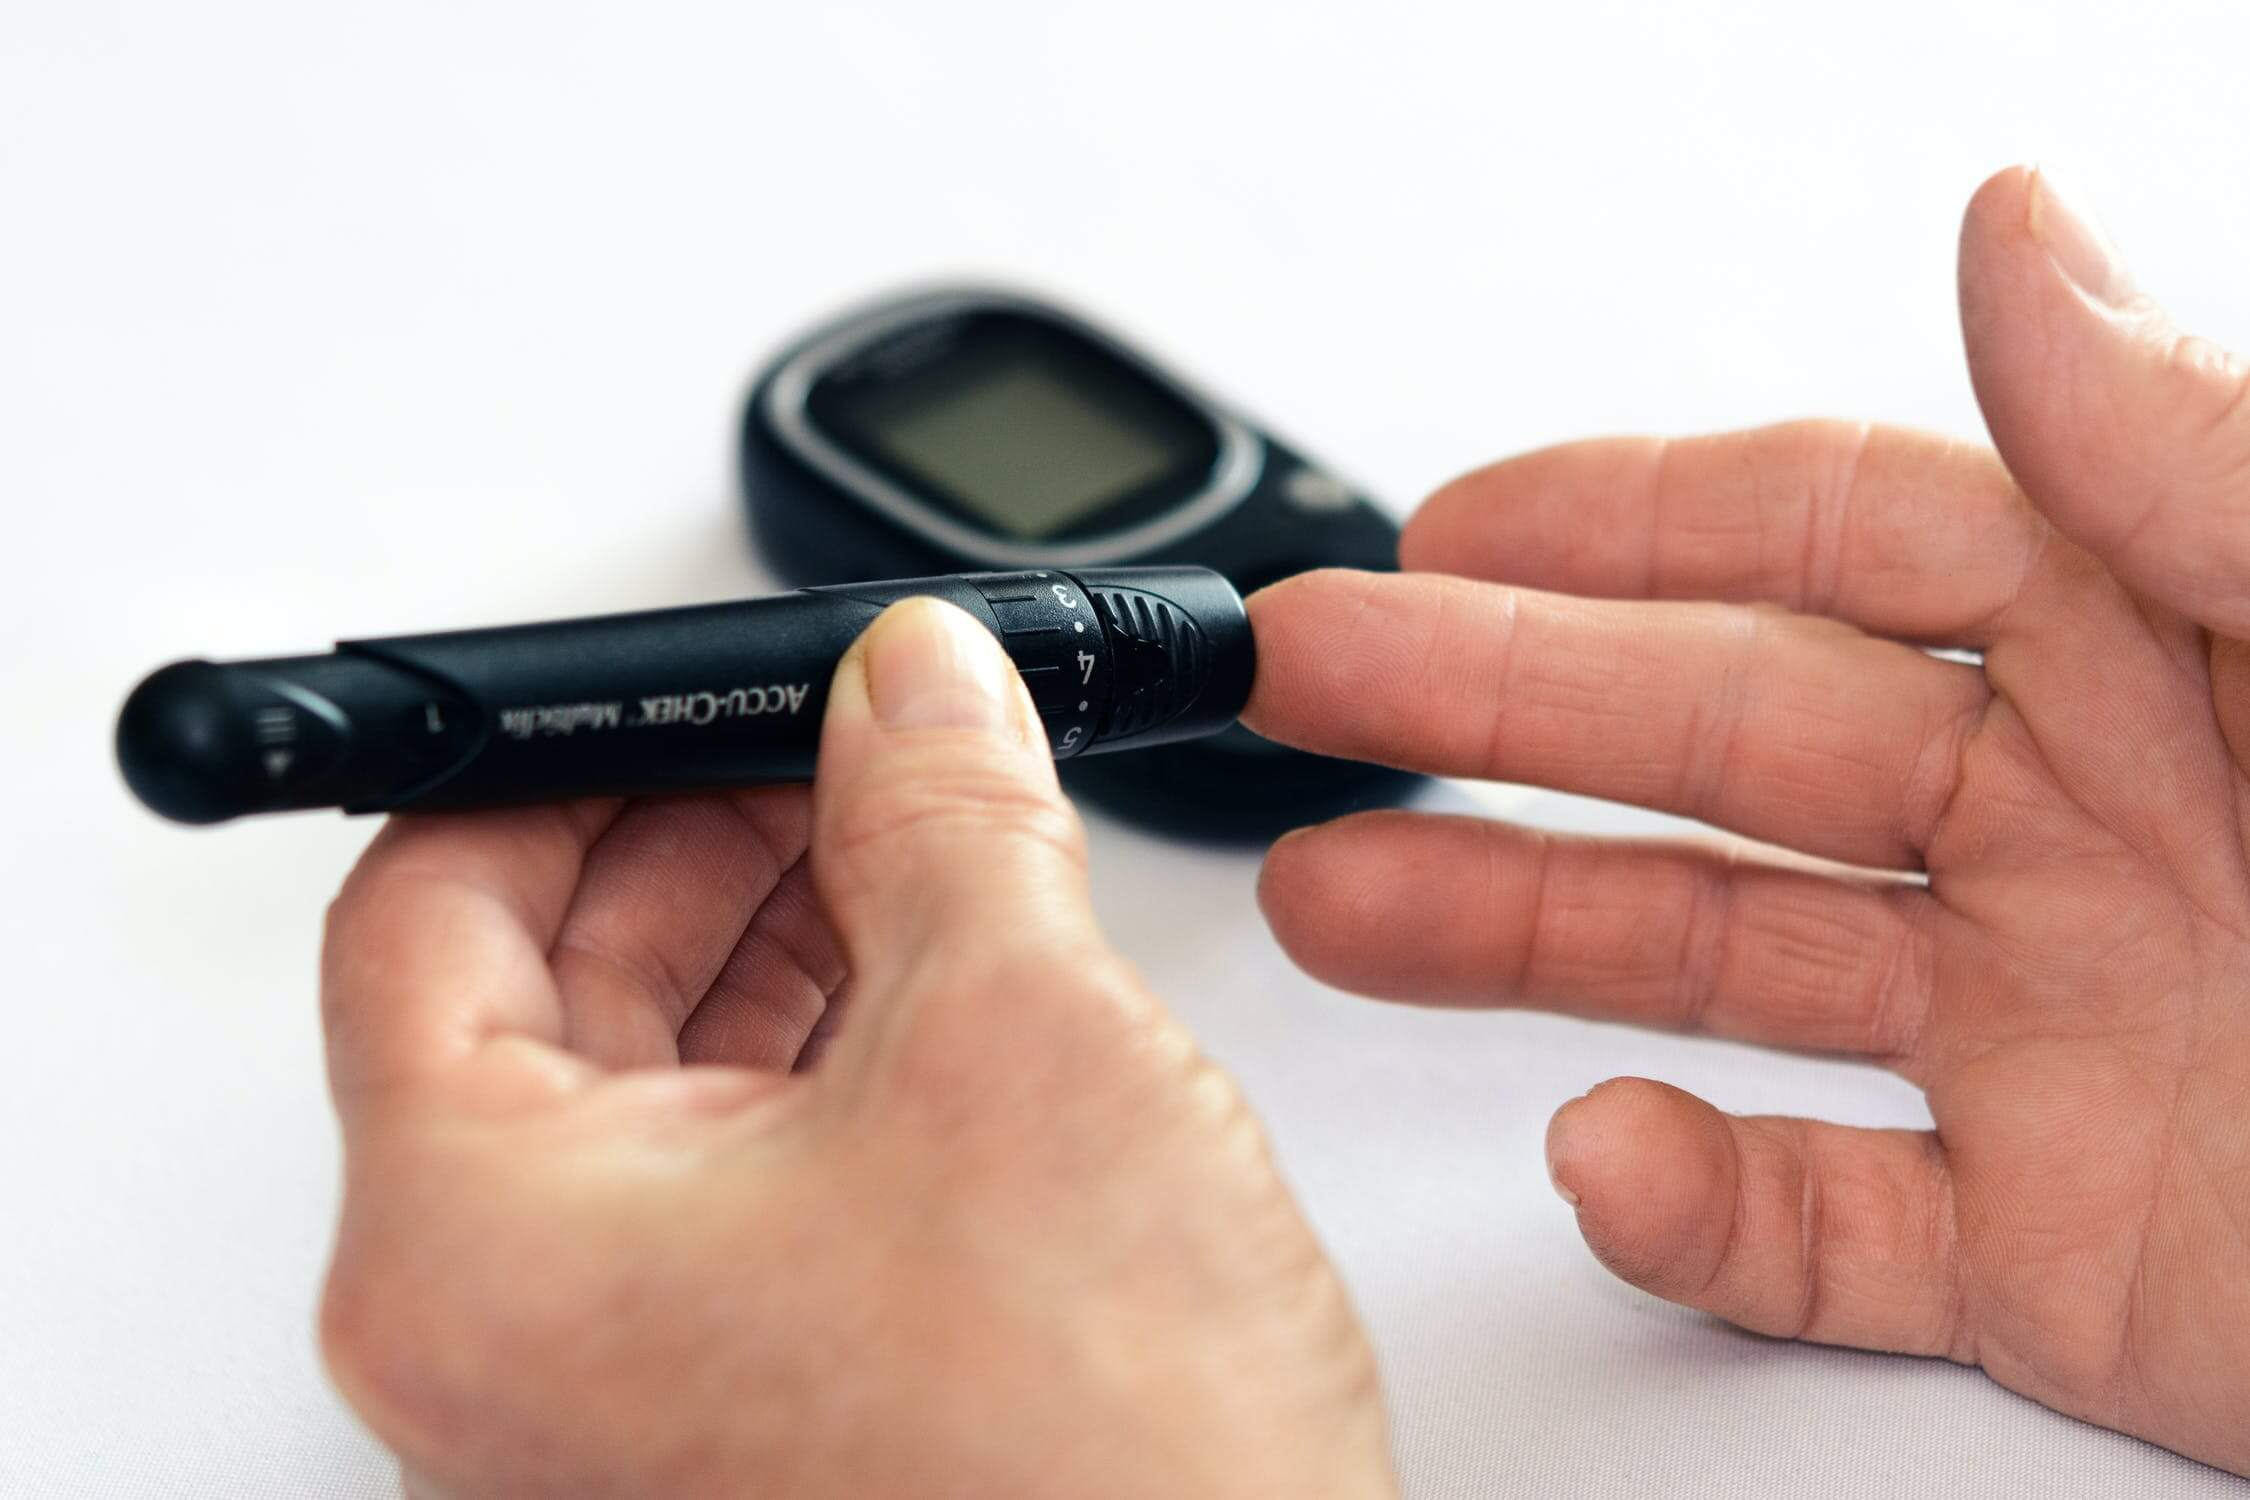 An individual with diabetes testing their blood sugar levels